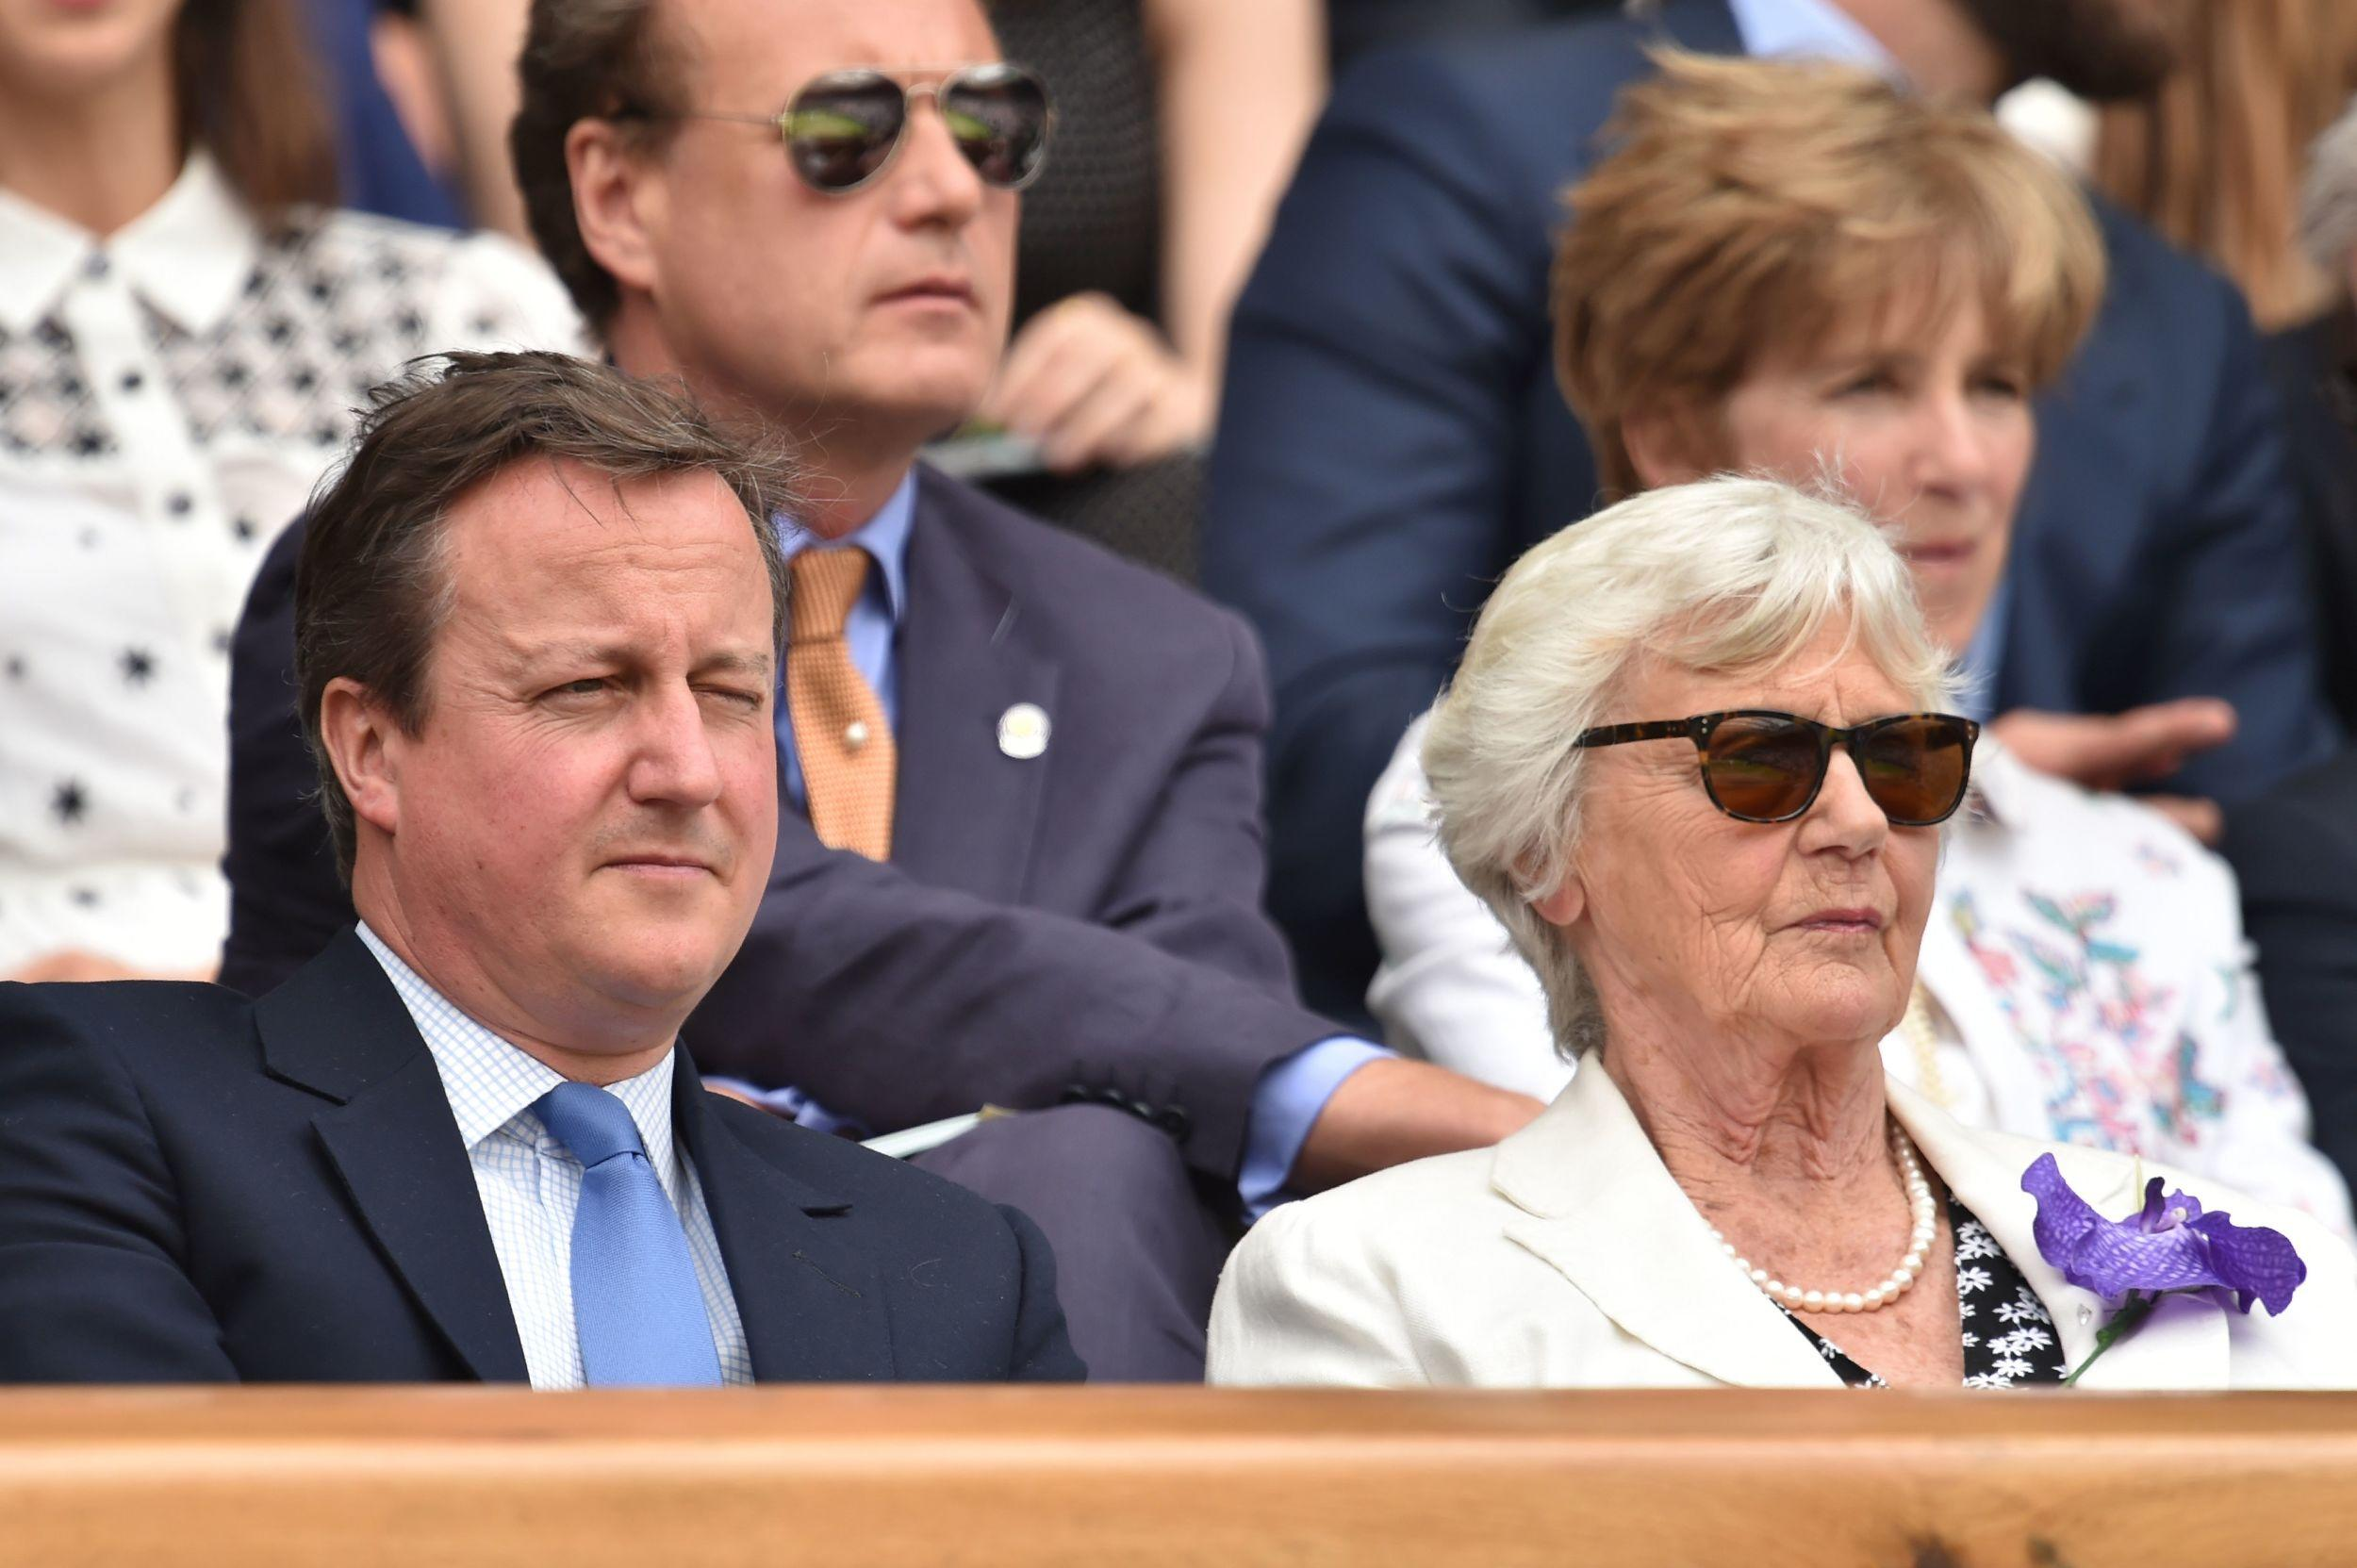 David Cameron sits by his mother Mary Cameron.